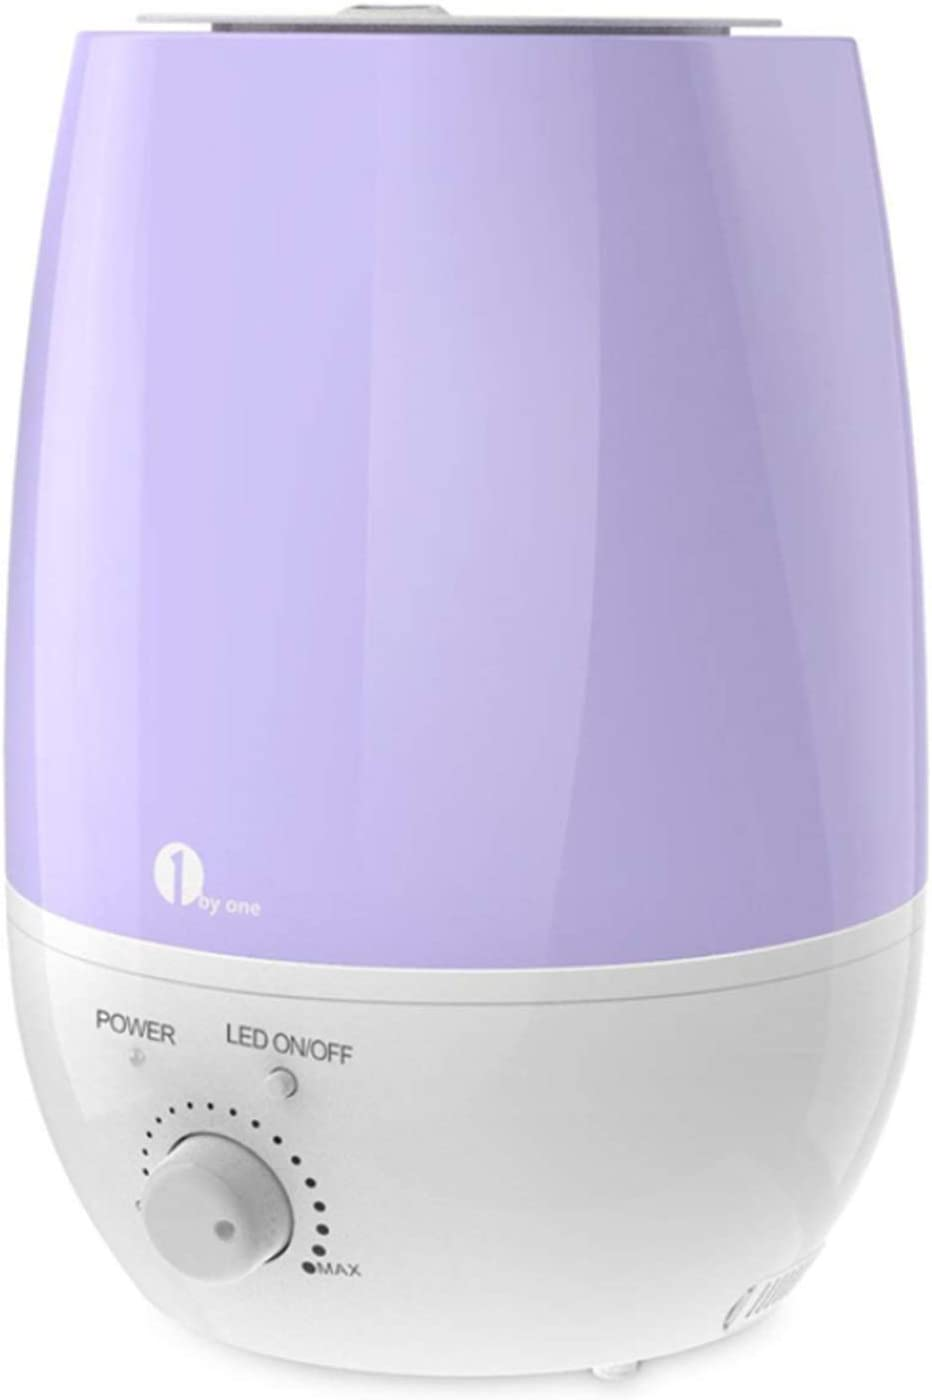 1byone Cool Mist Humidifier, 6L 1.59Gal Ultrasonic Humidifiers for Home Office Essential Oil Aroma Diffuser Humidifier for Baby Bedroom Auto Shut-Off 7 Colors LED Night Light 20-80 Hours Working Time